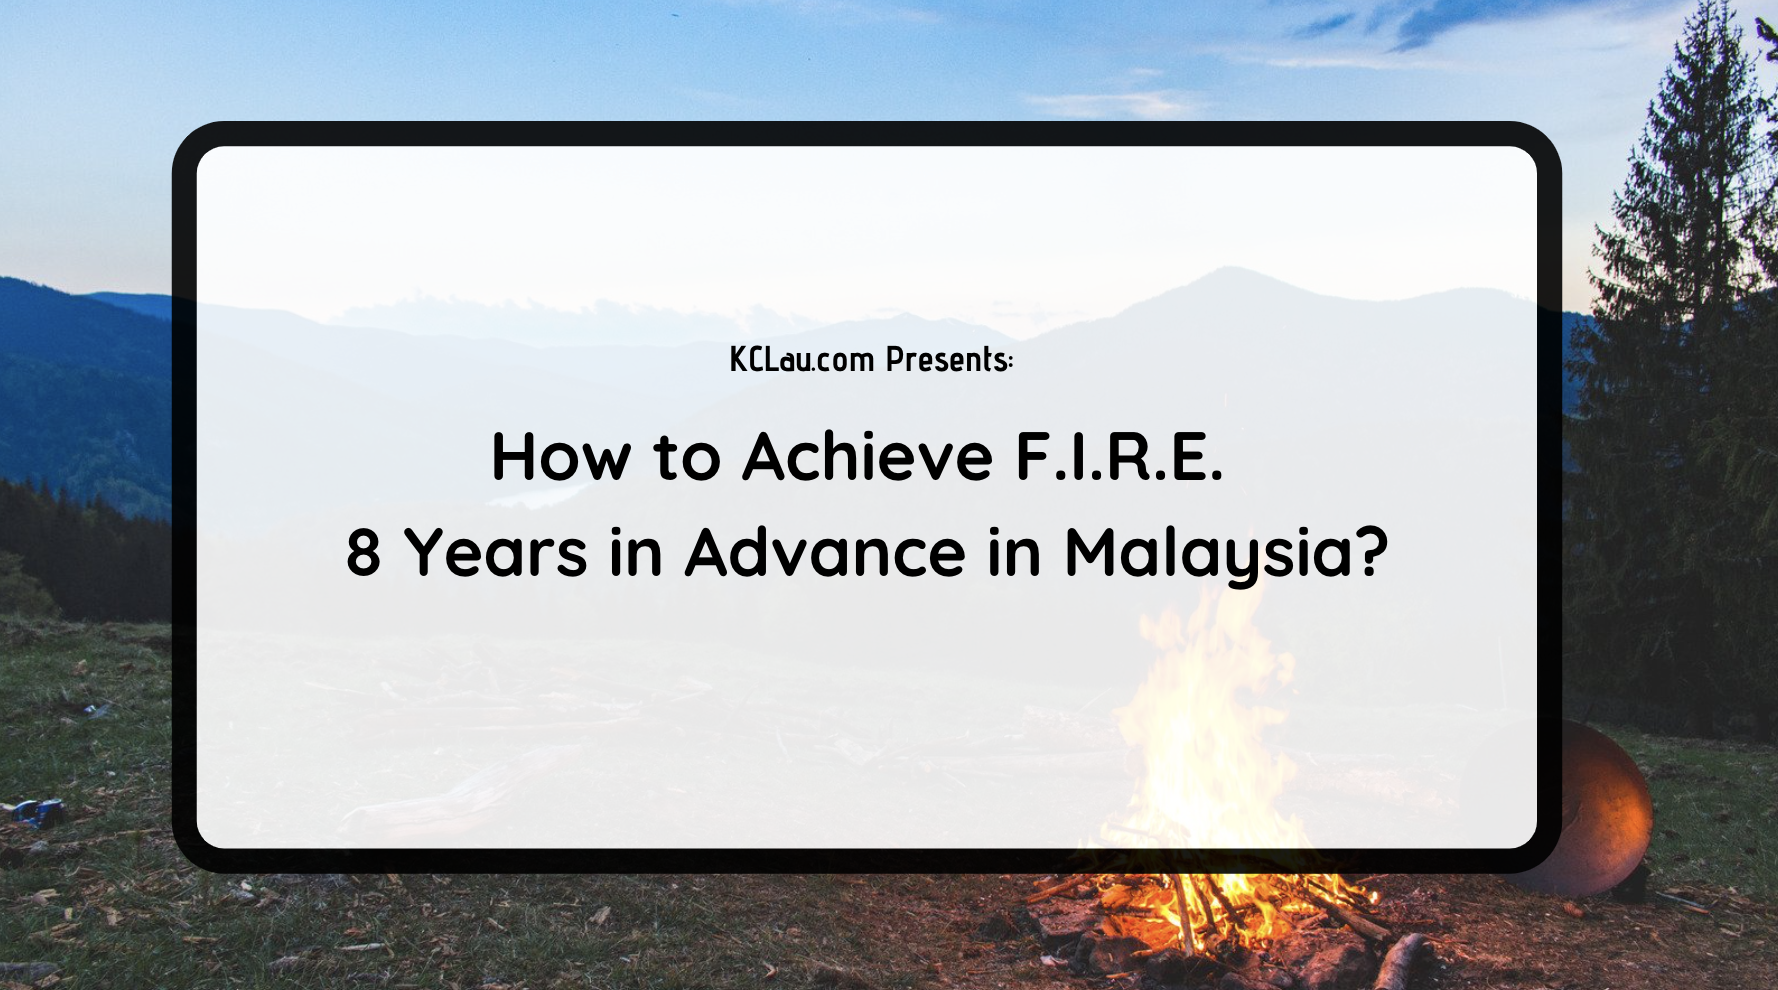 How to Achieve F.I.R.E. 8 Years in Advance in Malaysia?